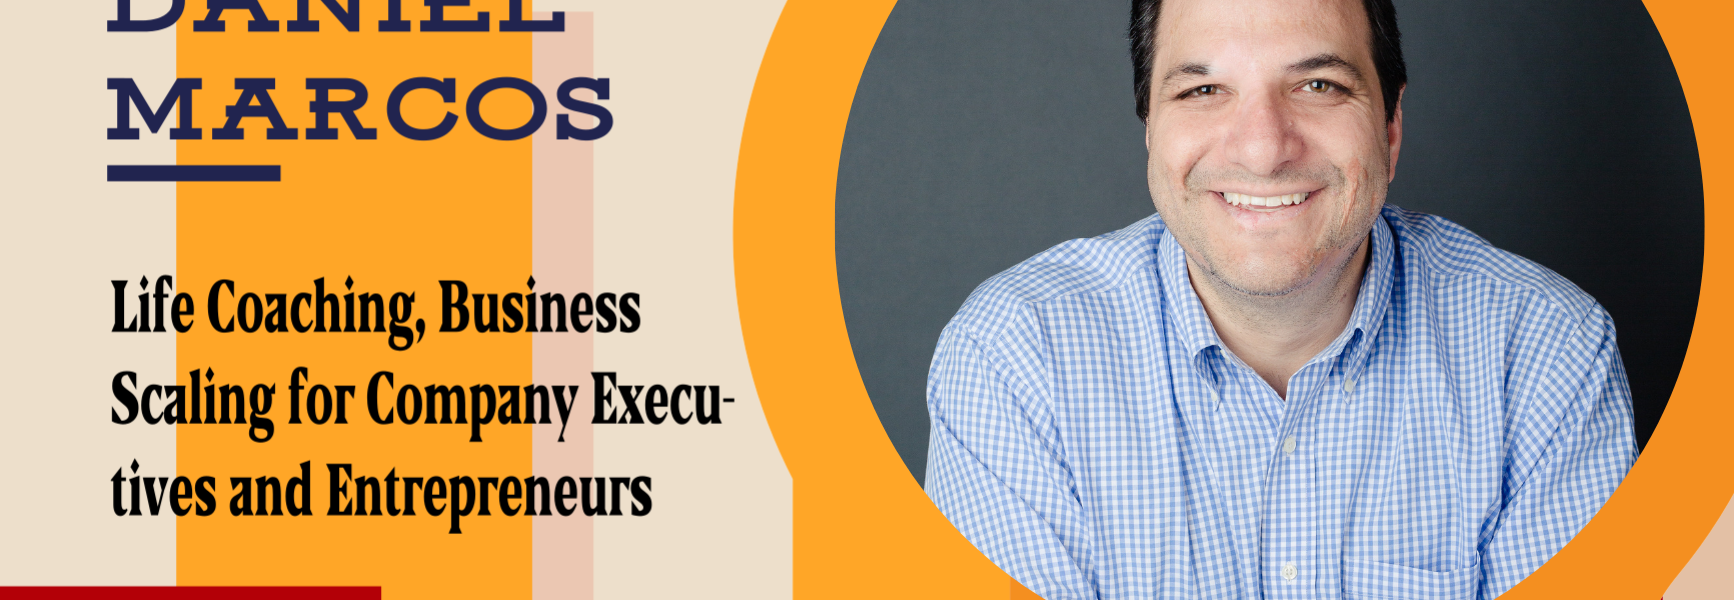 Episode 106 - Life Coaching, Business Scaling for Company Executives and Entrepreneurs with Daniel Marcos